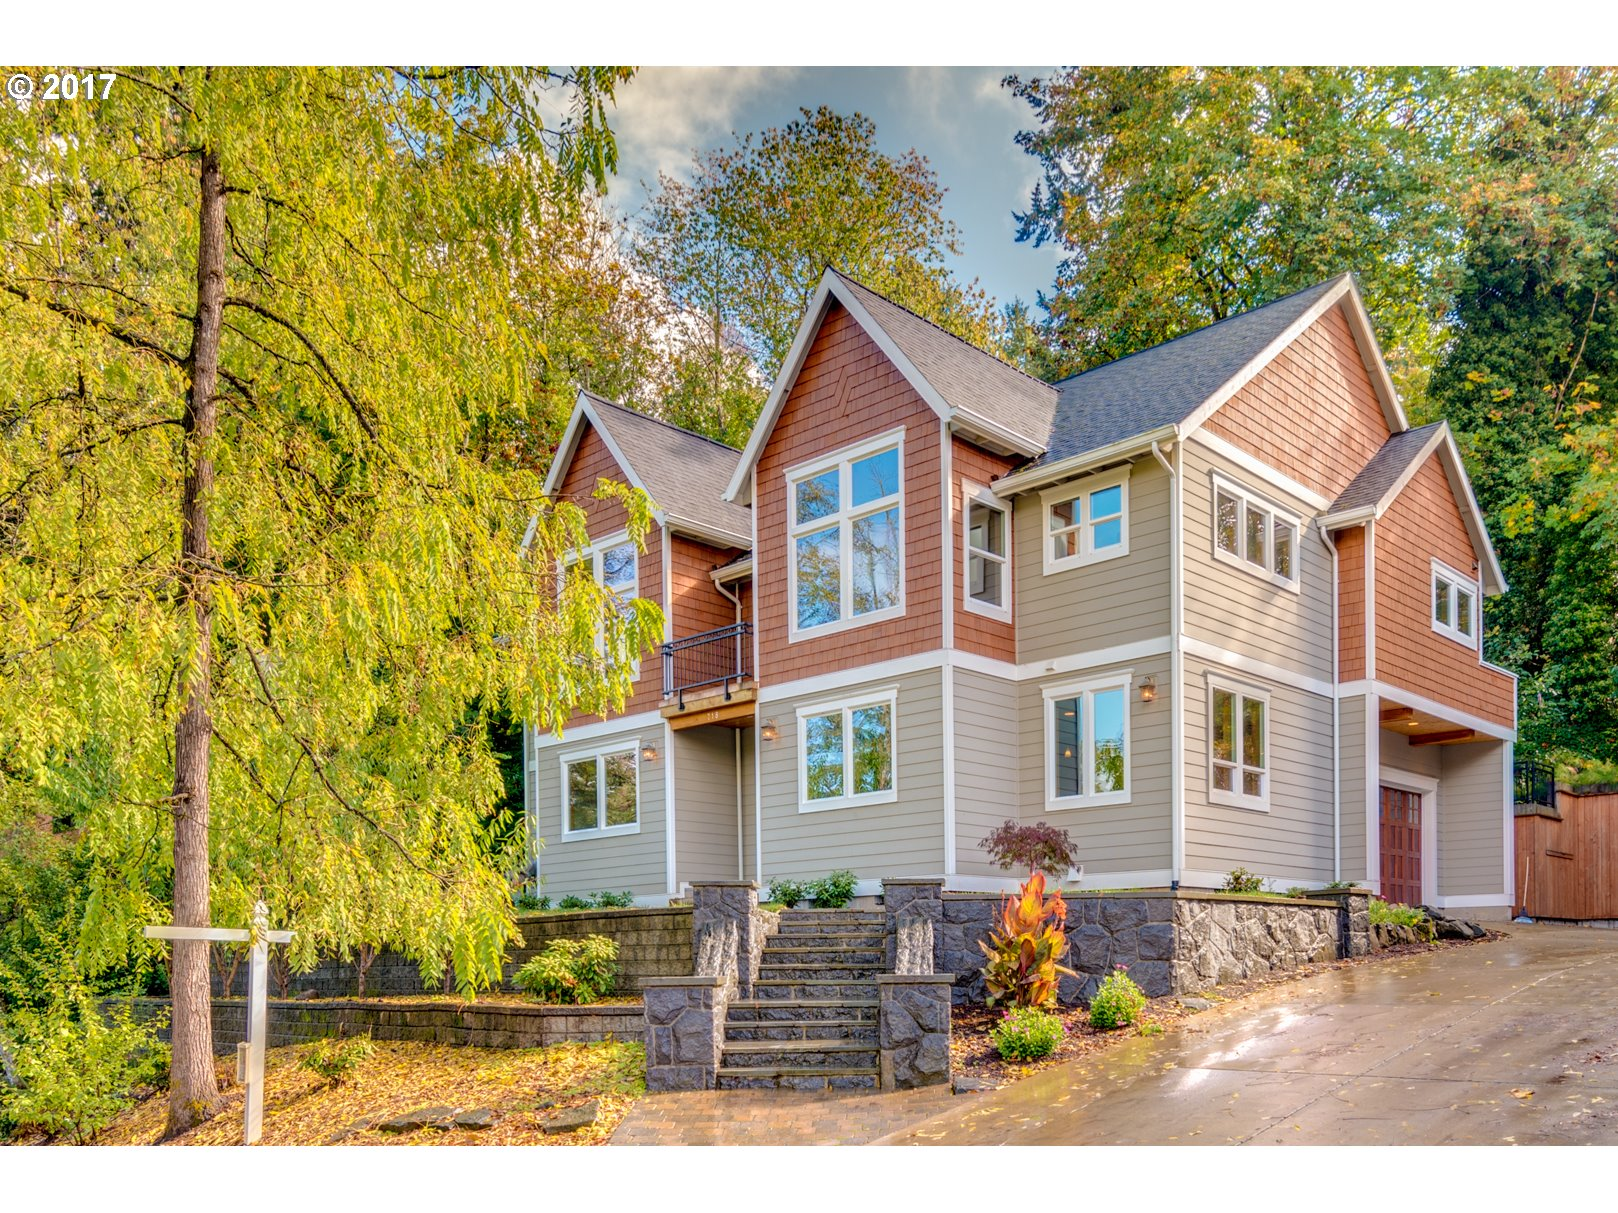 718 MAPLE ST, Lake Oswego, OR 97034